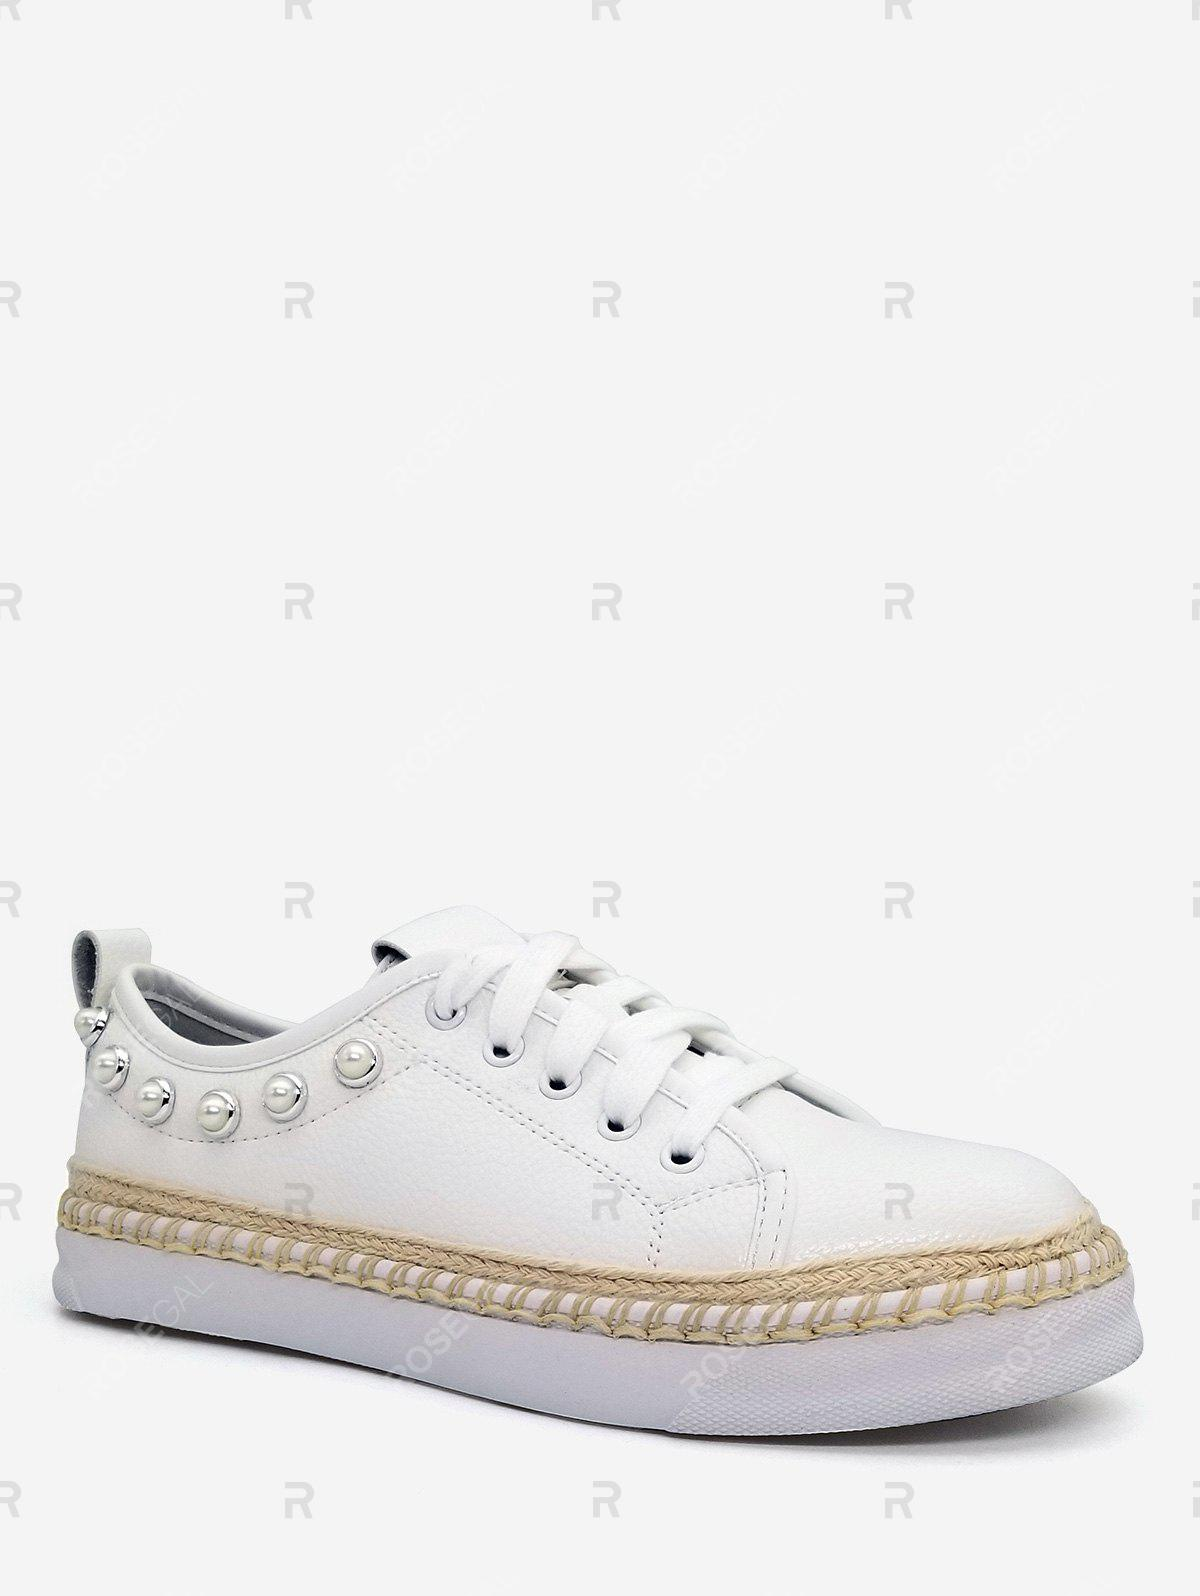 Buy PU Leather Knitted Platform Sneakers